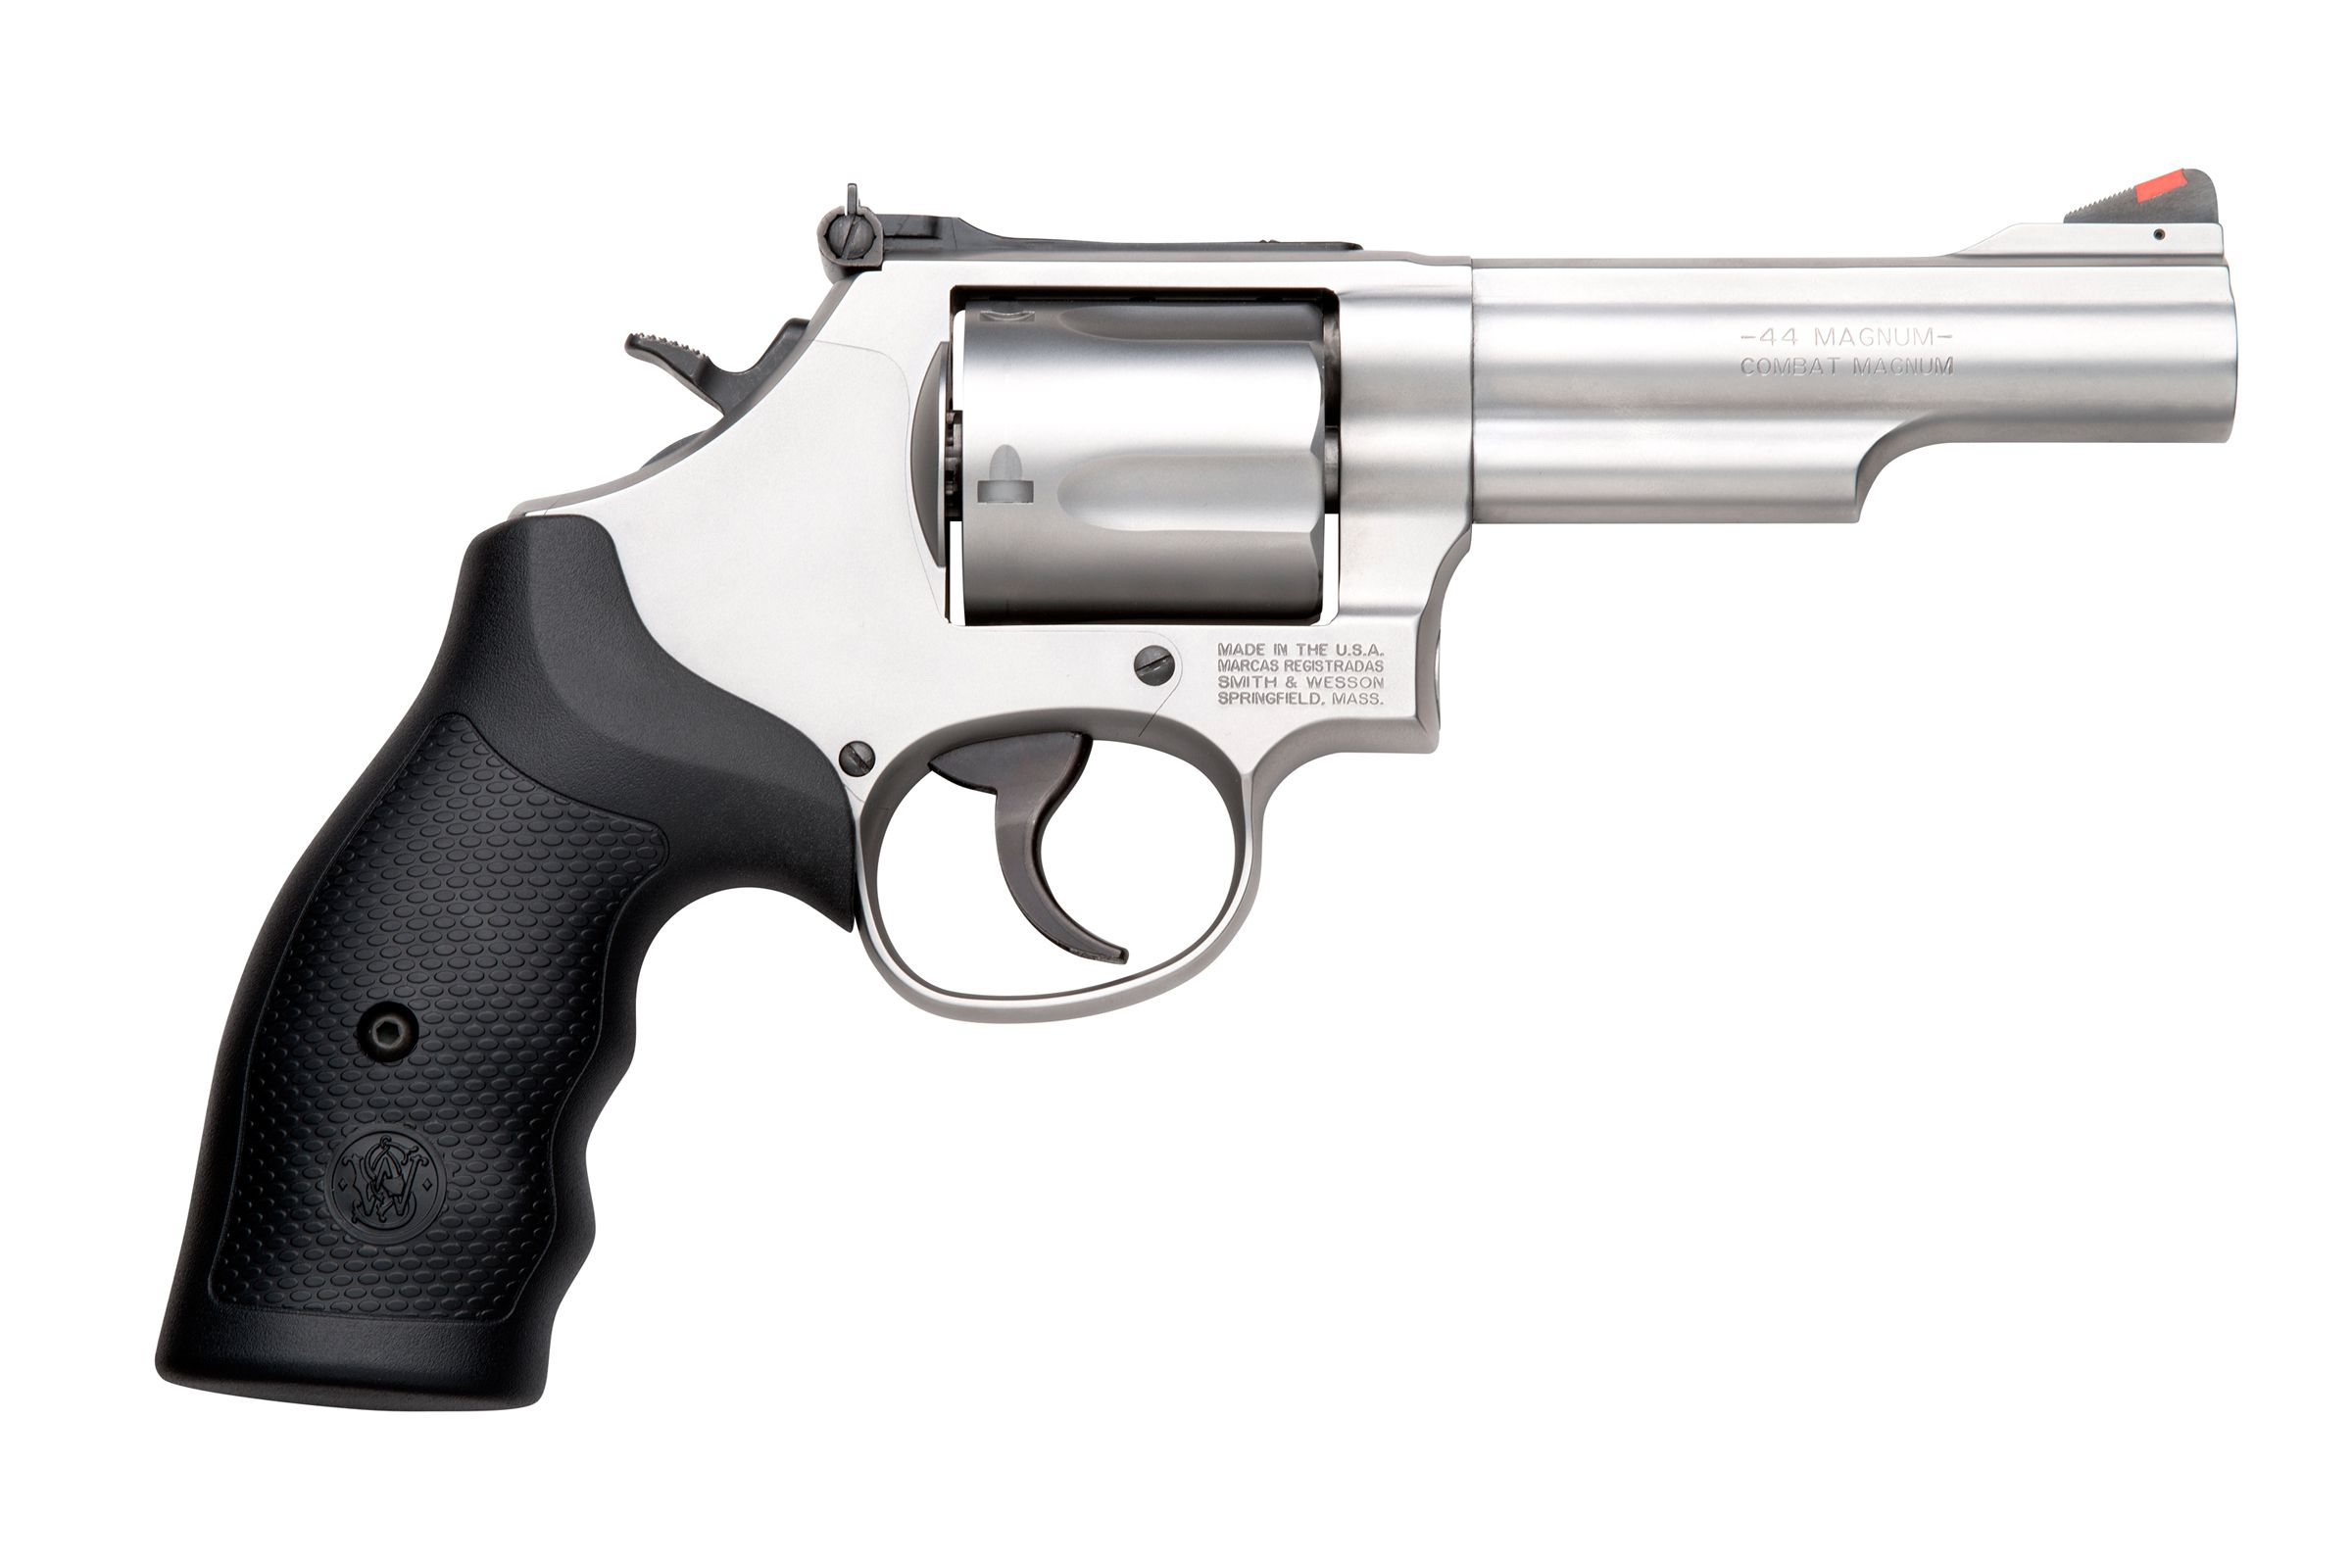 The Smith & Wesson Model 69 44 Magnum.